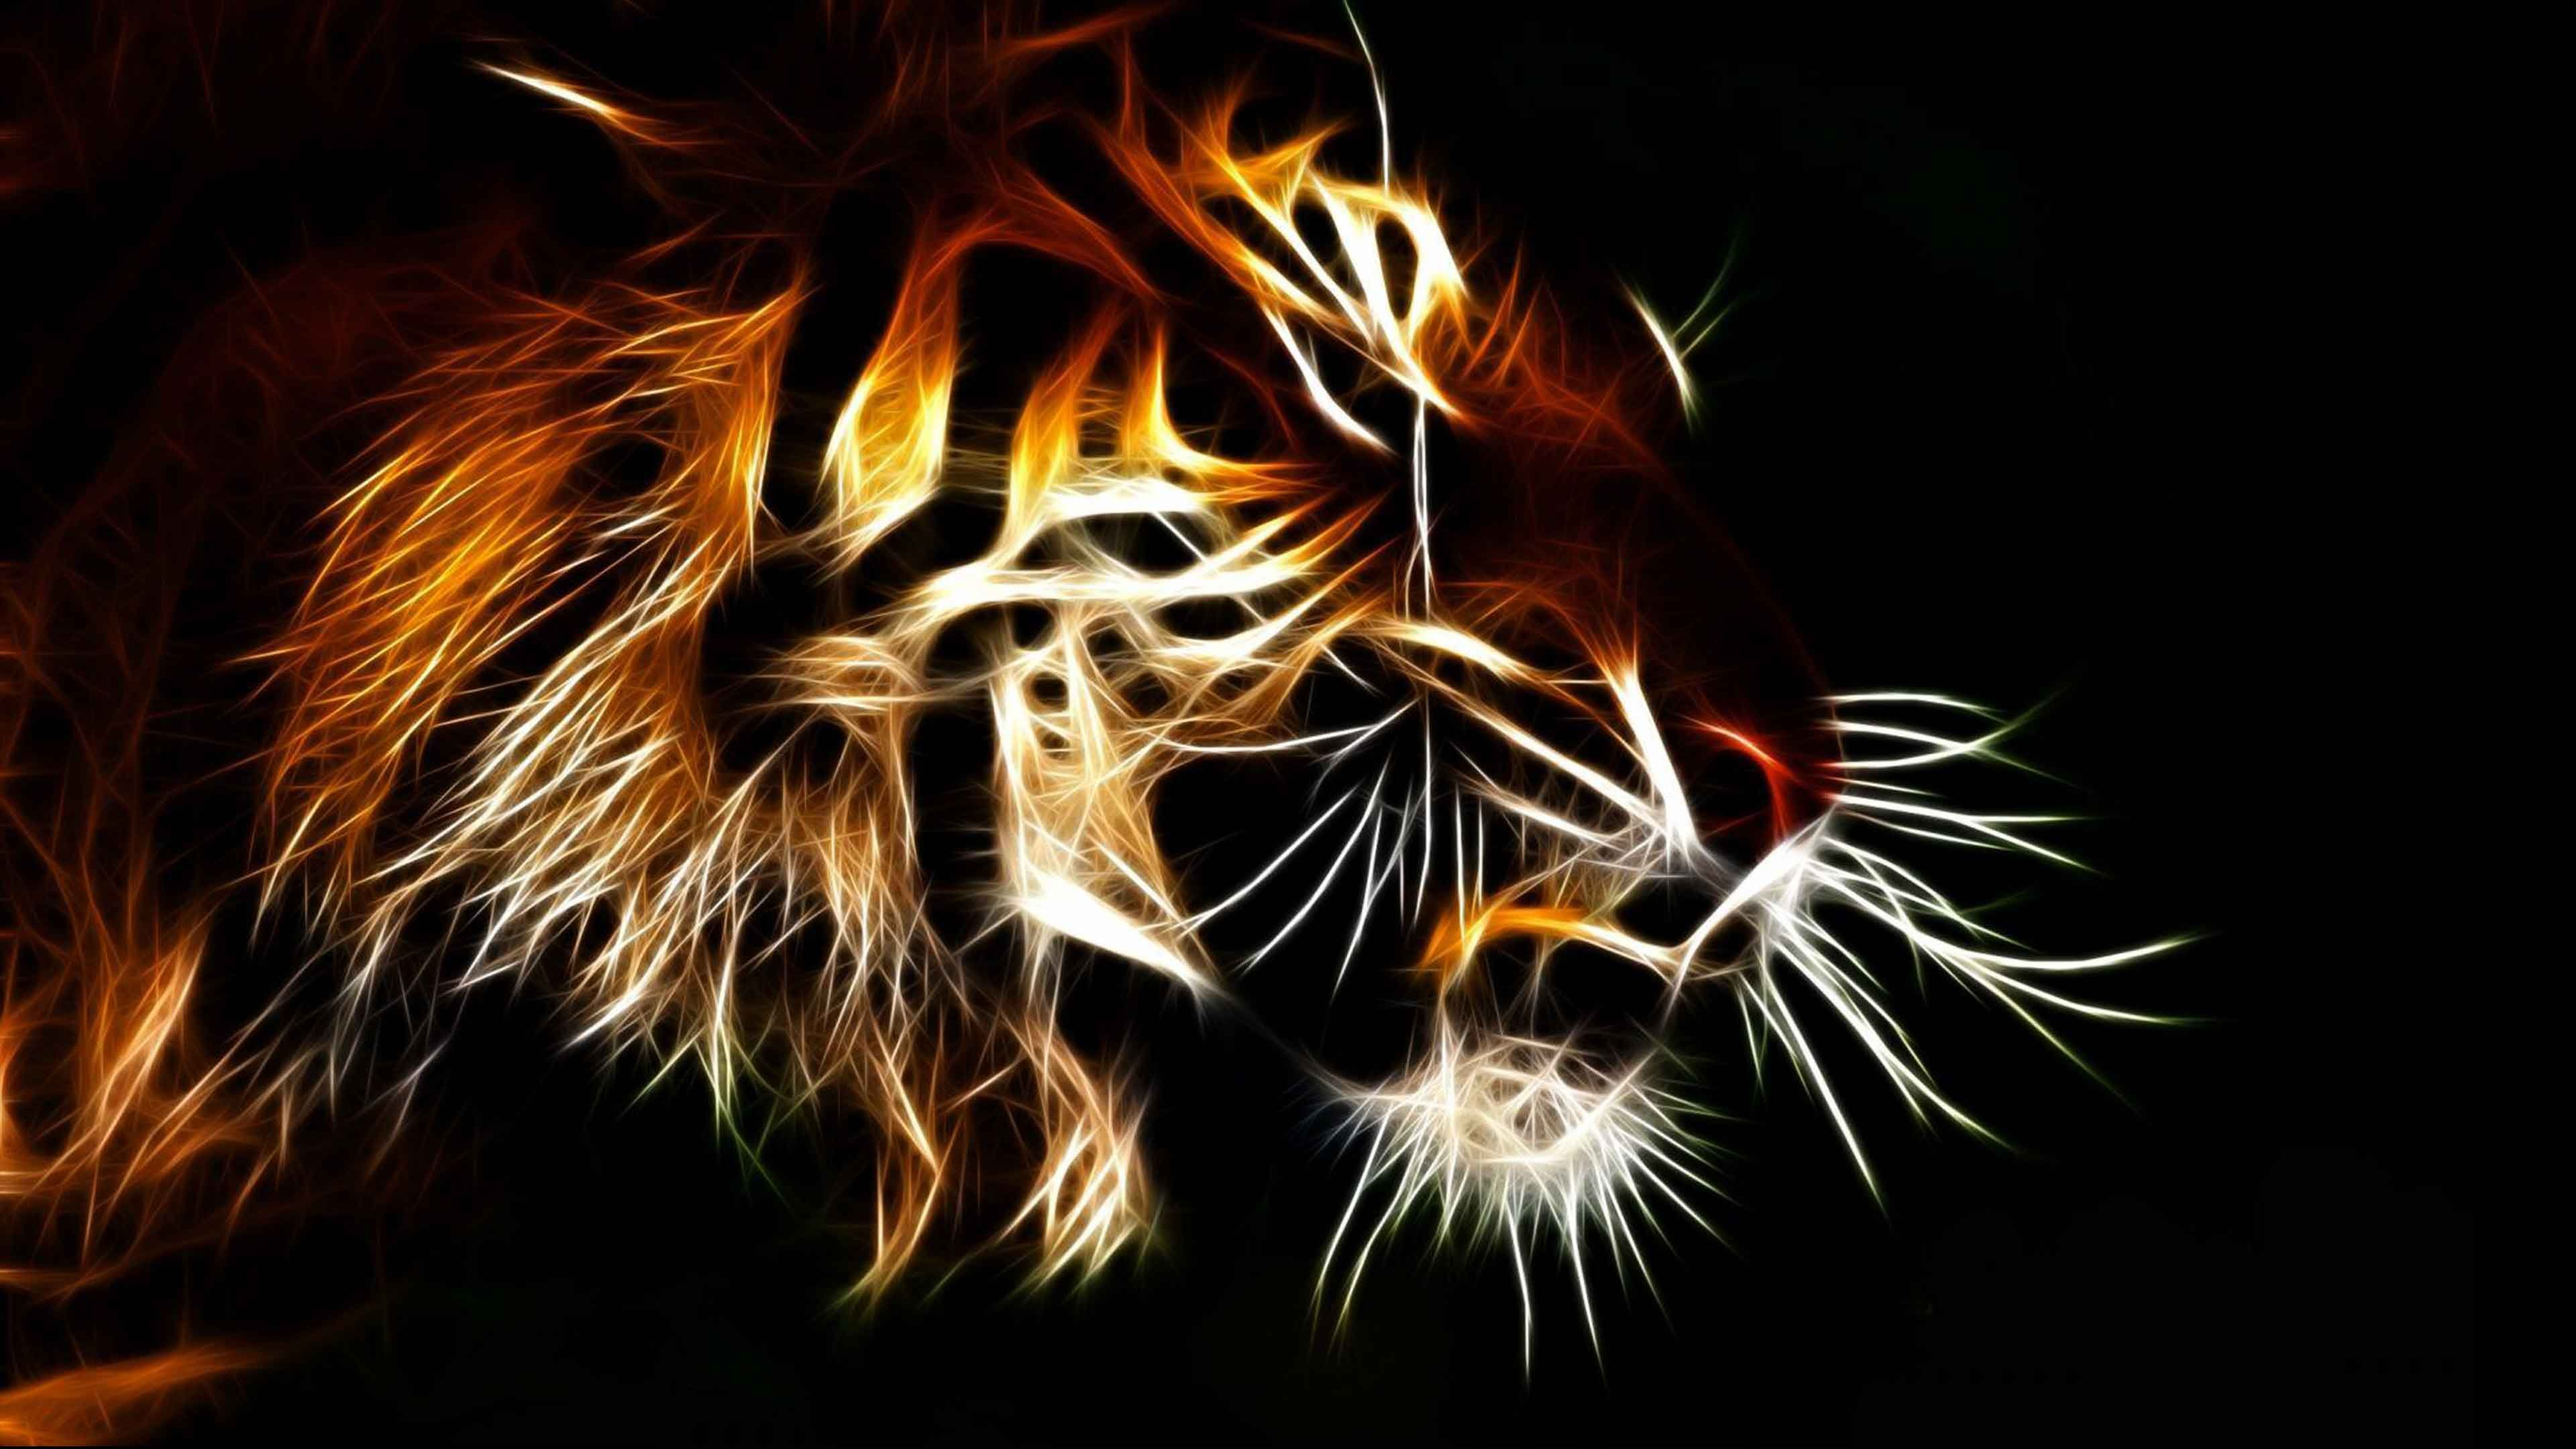 Best 3d Tigers Wallpaper Best Wallpaper Hd Tiger Wallpaper Animal Wallpaper Tiger Pictures